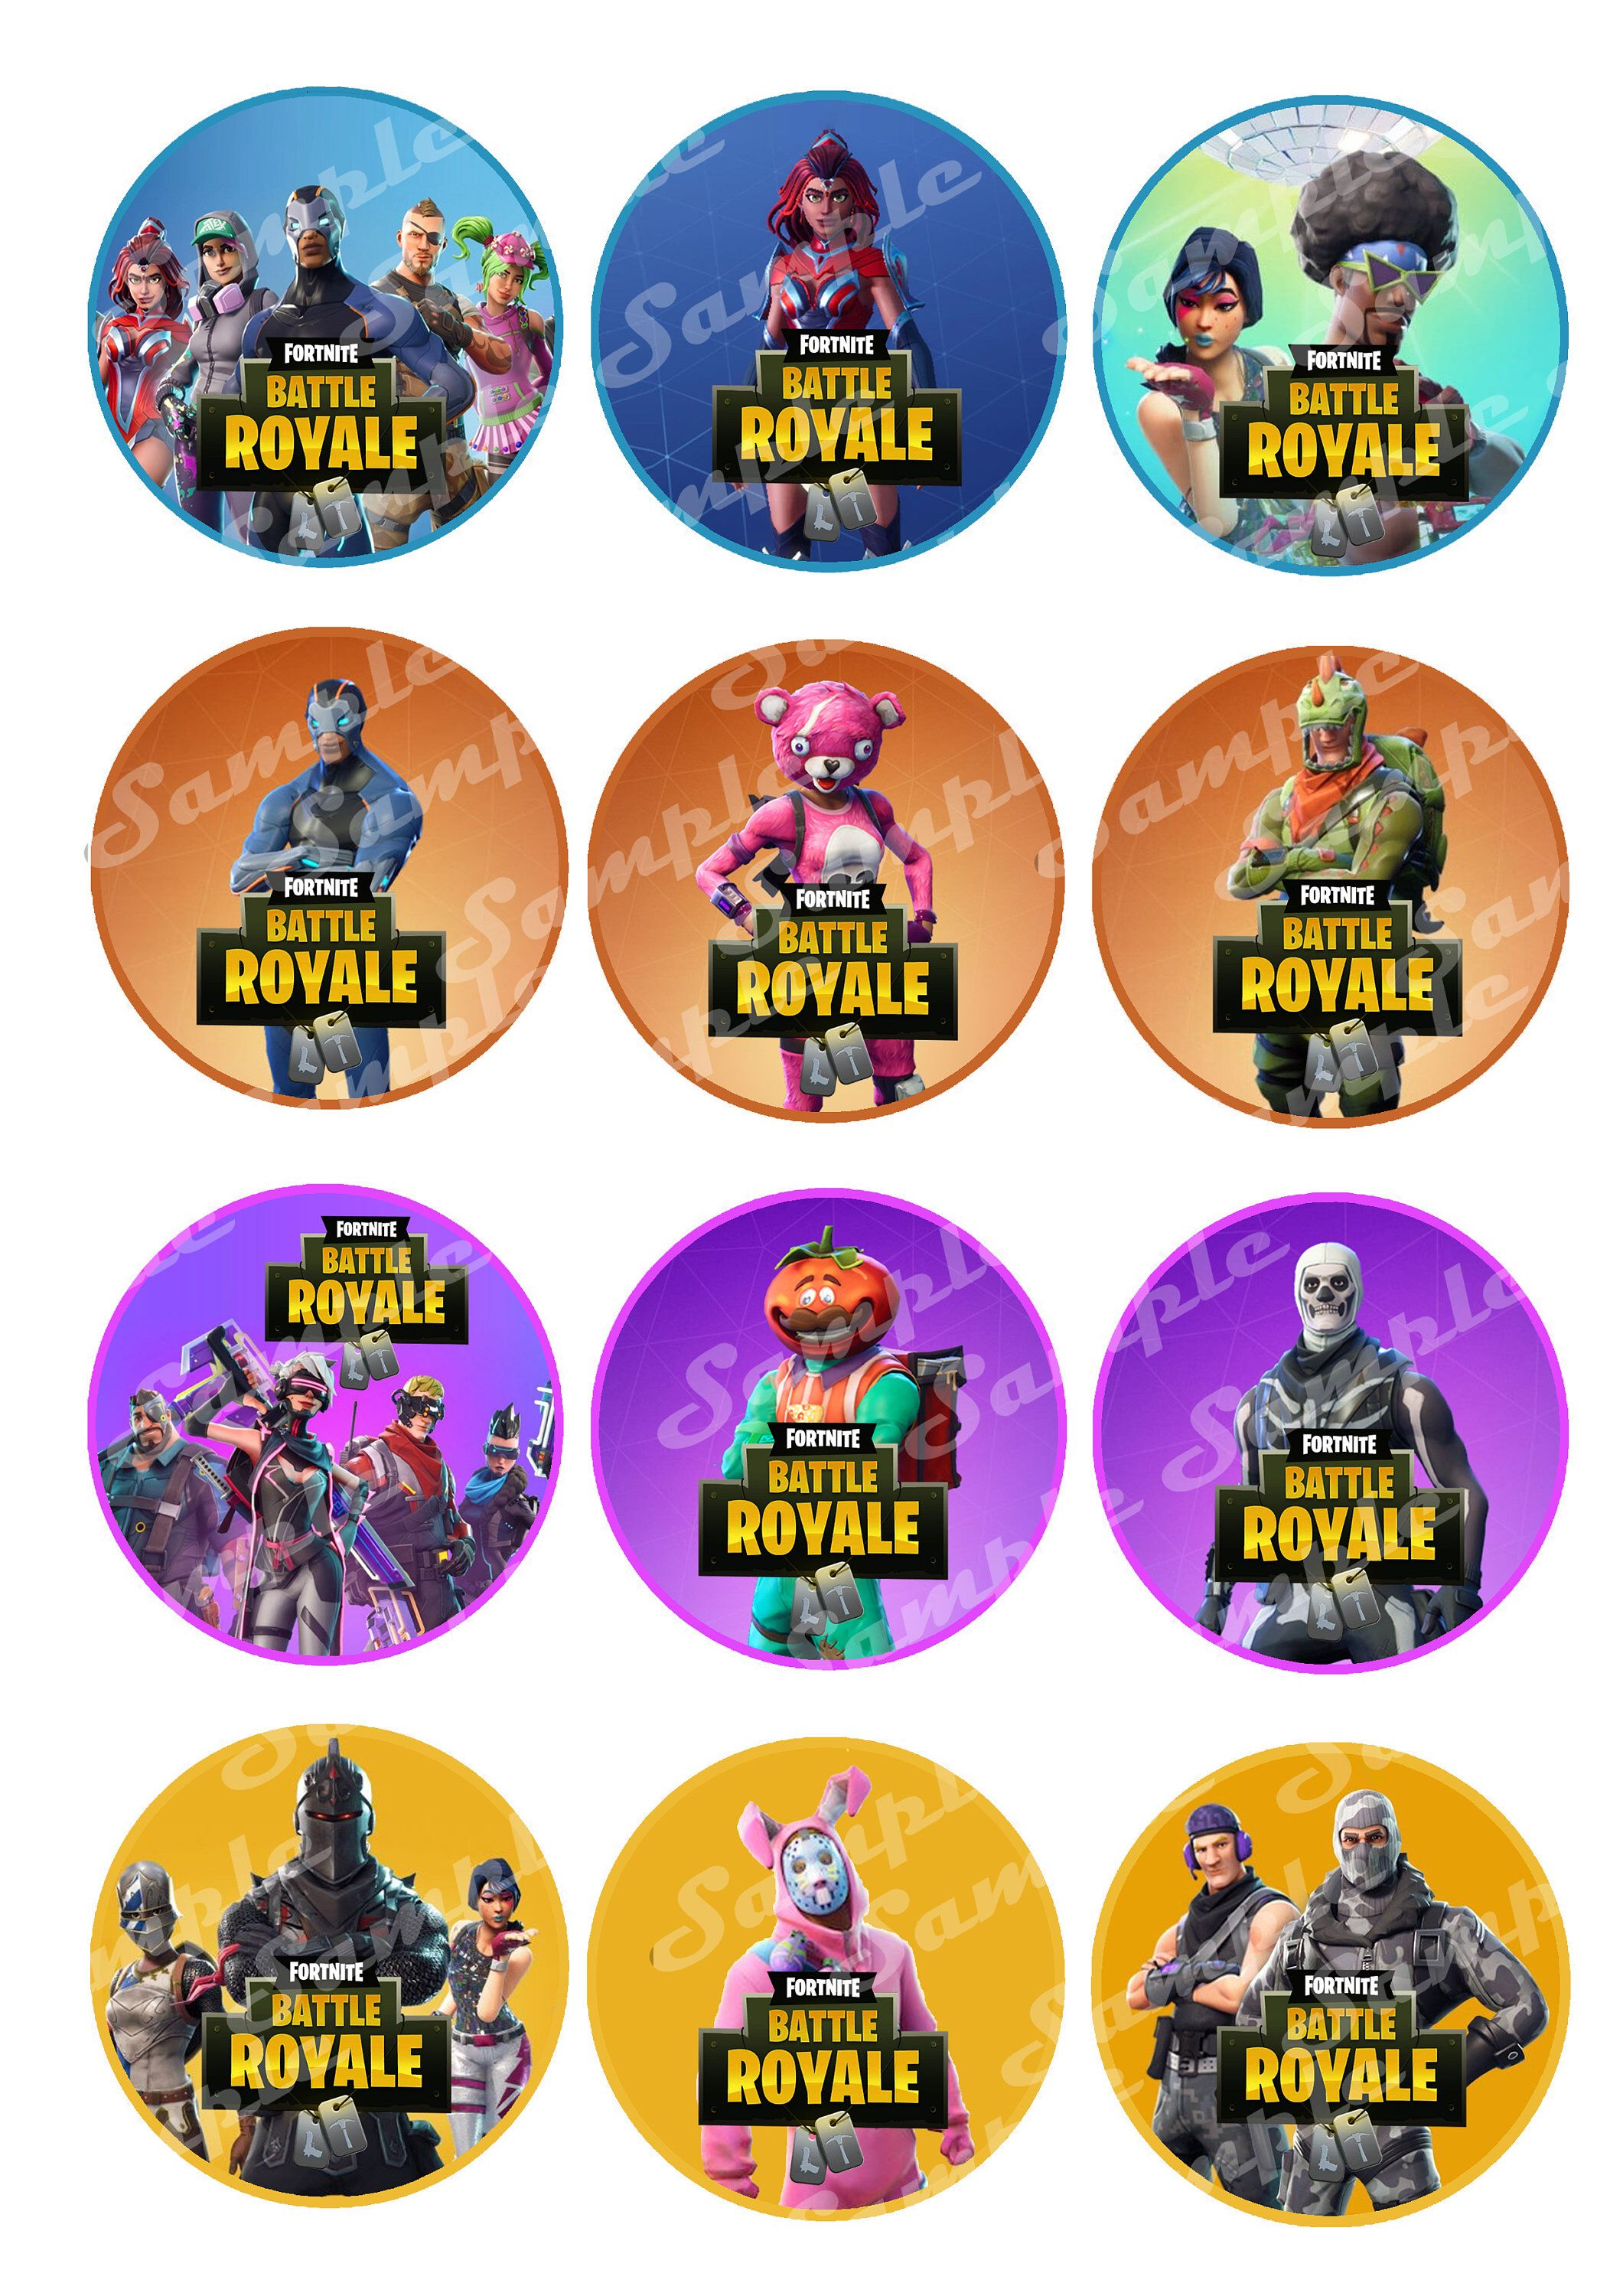 Excited to share the latest addition to my #etsy shop: Fortnite HD Printable Cupcake Toppers #birthday #fortnite #cupcake #toppers #season4 #fort #nite #game #battleroyal #battle